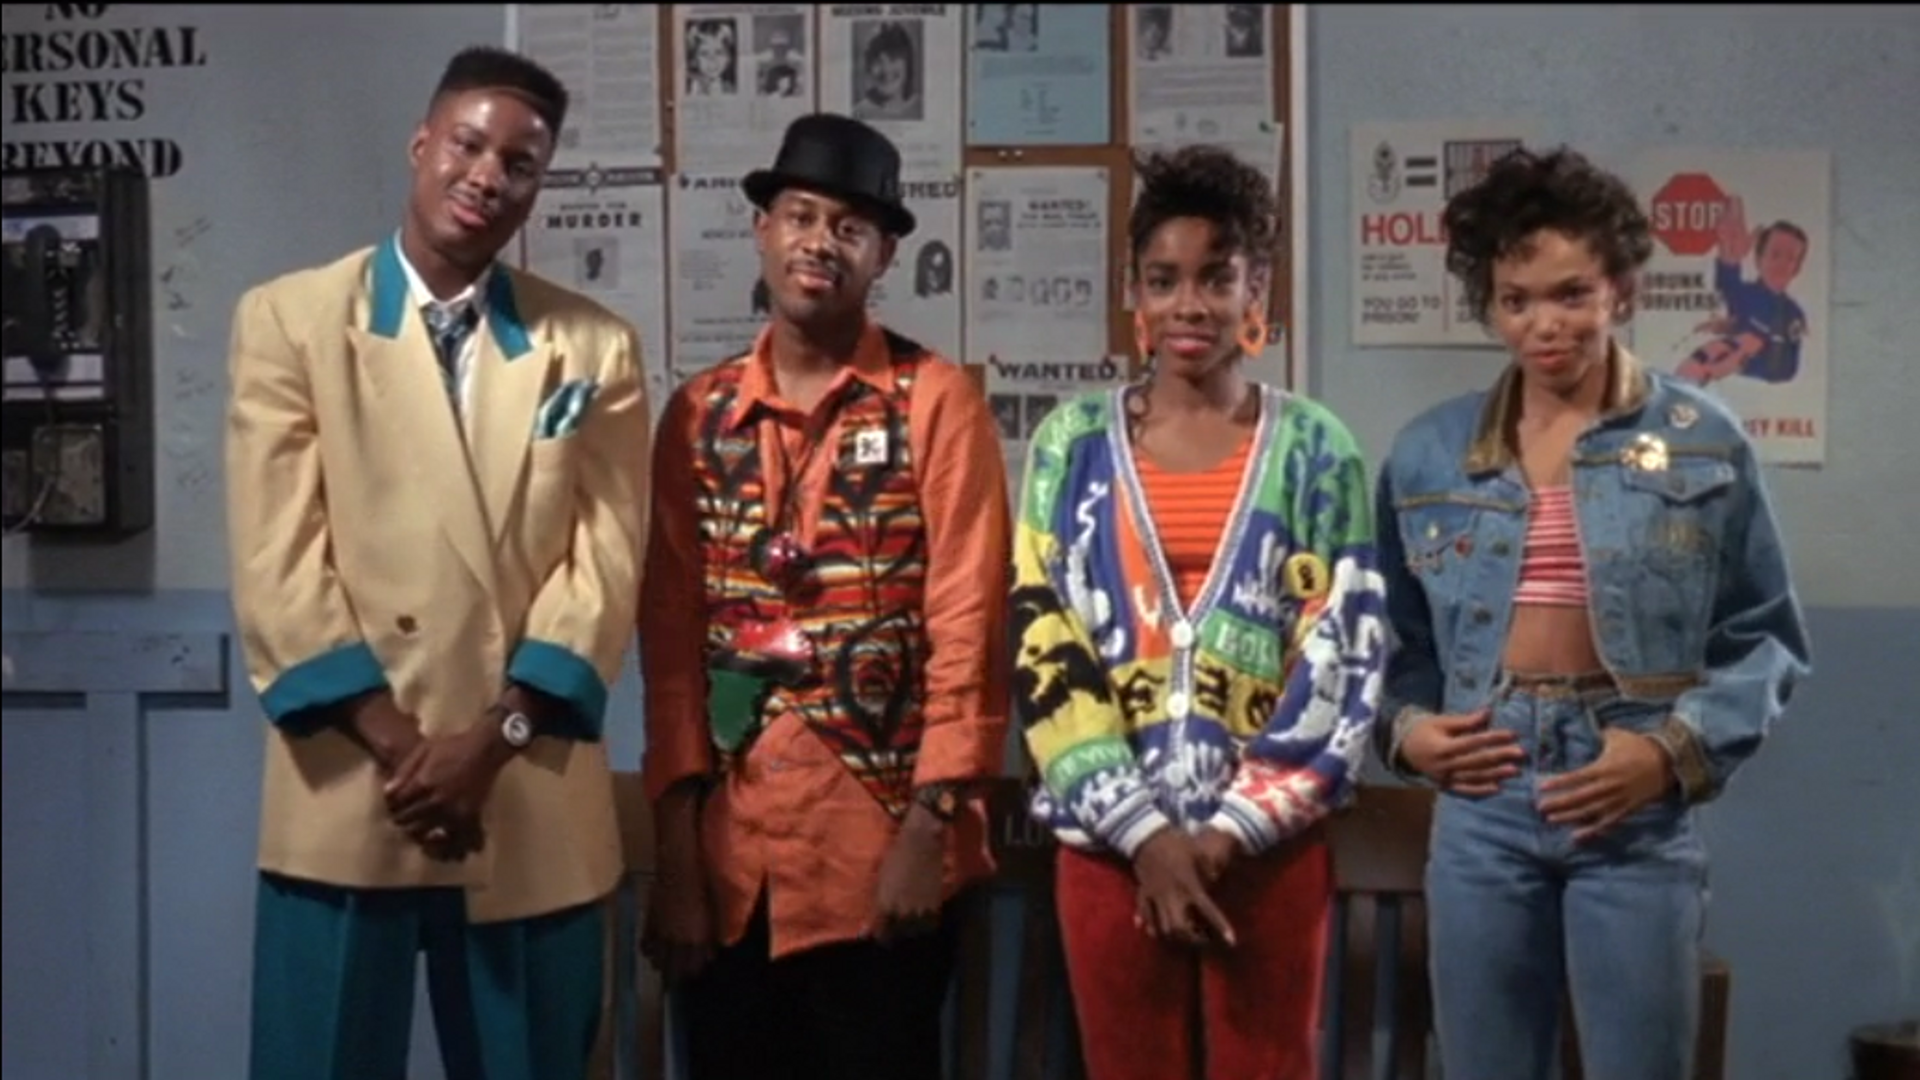 House Party - 1990 - Hilarious classic party film. Black kids being allowed to be Black kids and have fun without having to the funny side kick friend to a White protagonist.